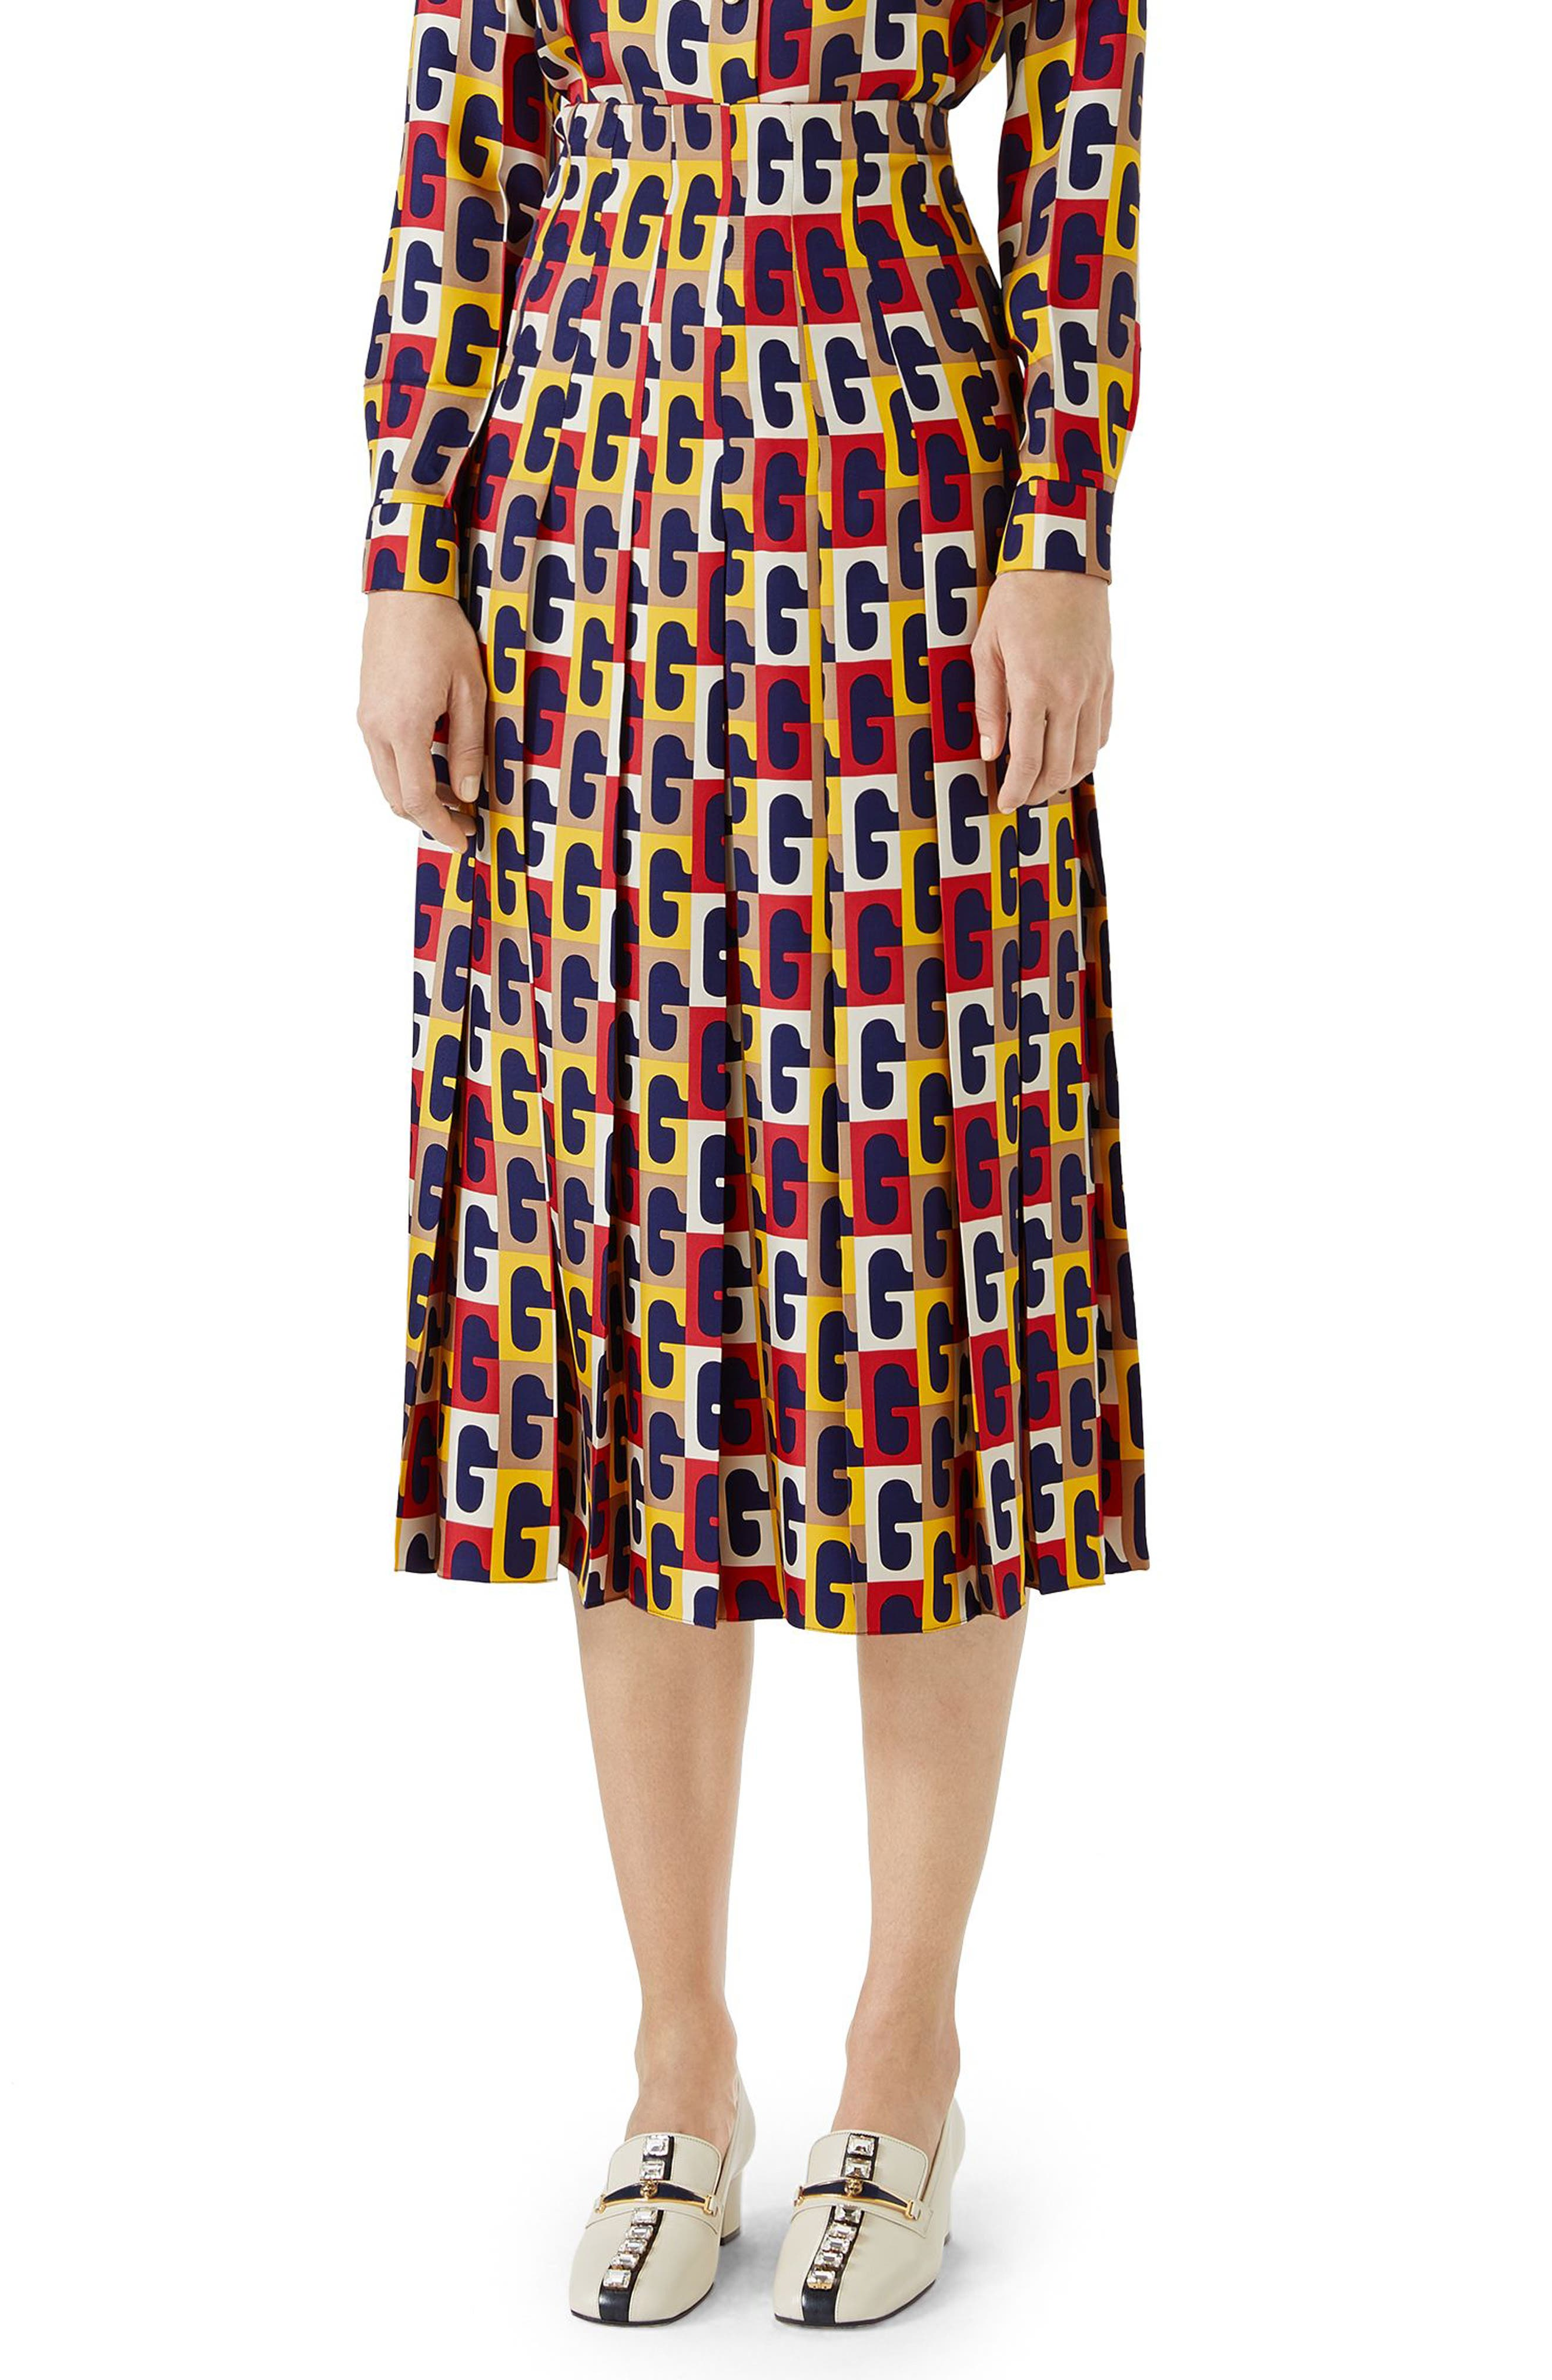 G-Sequence Print Silk Skirt,                             Main thumbnail 1, color,                             Ivory/ Yellow/ Red Print